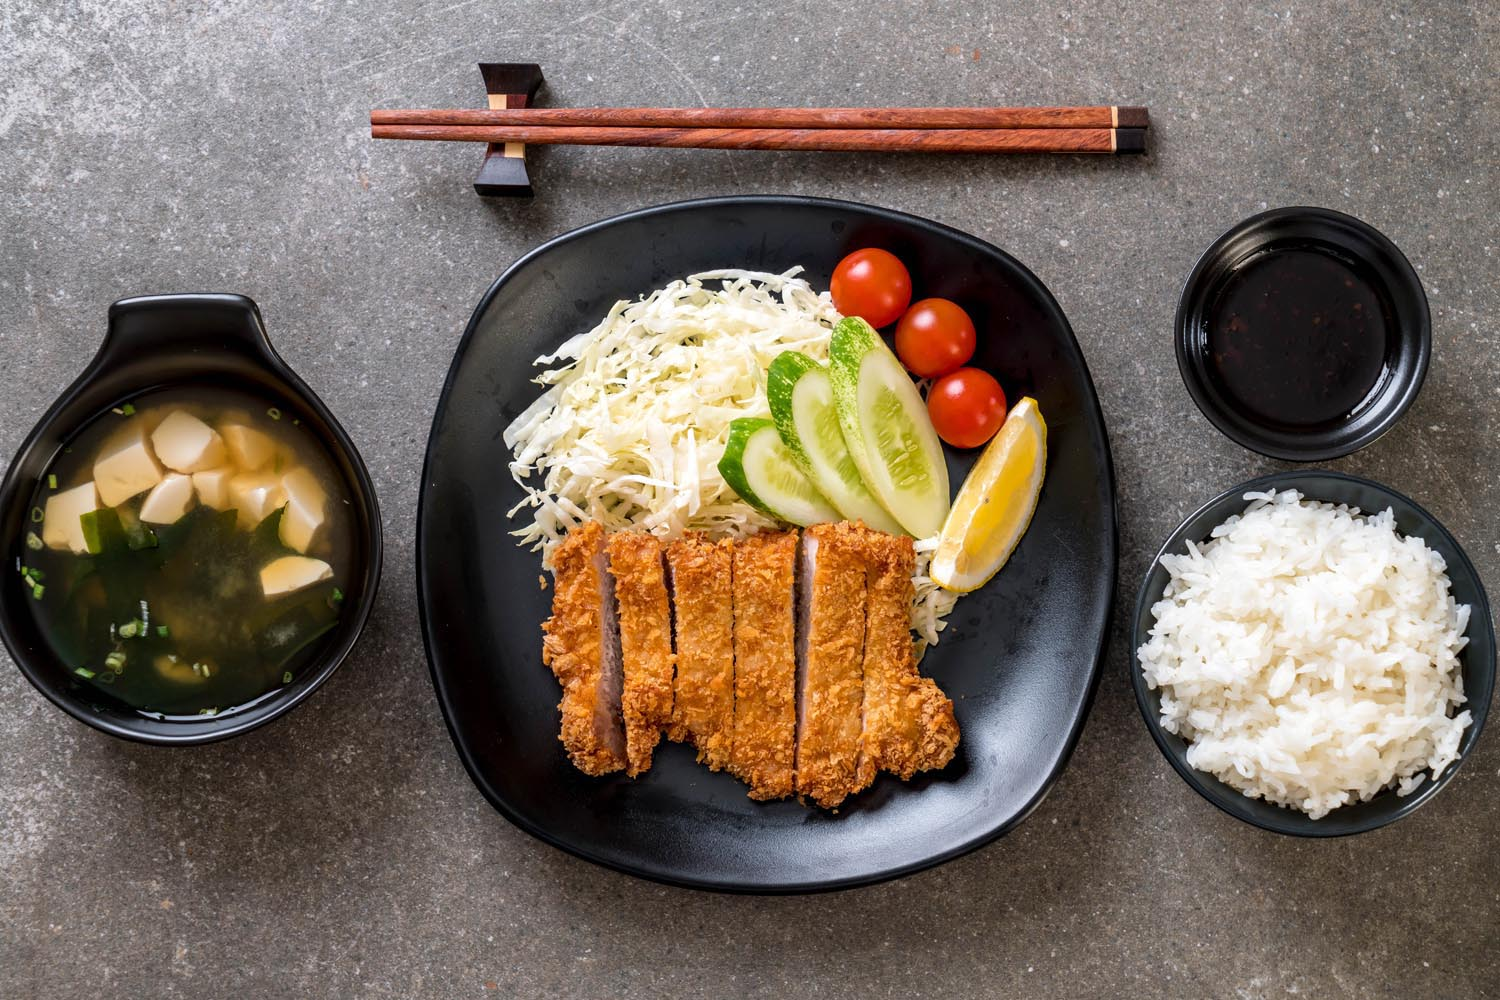 Tonkatsu – popular japanese cutlet